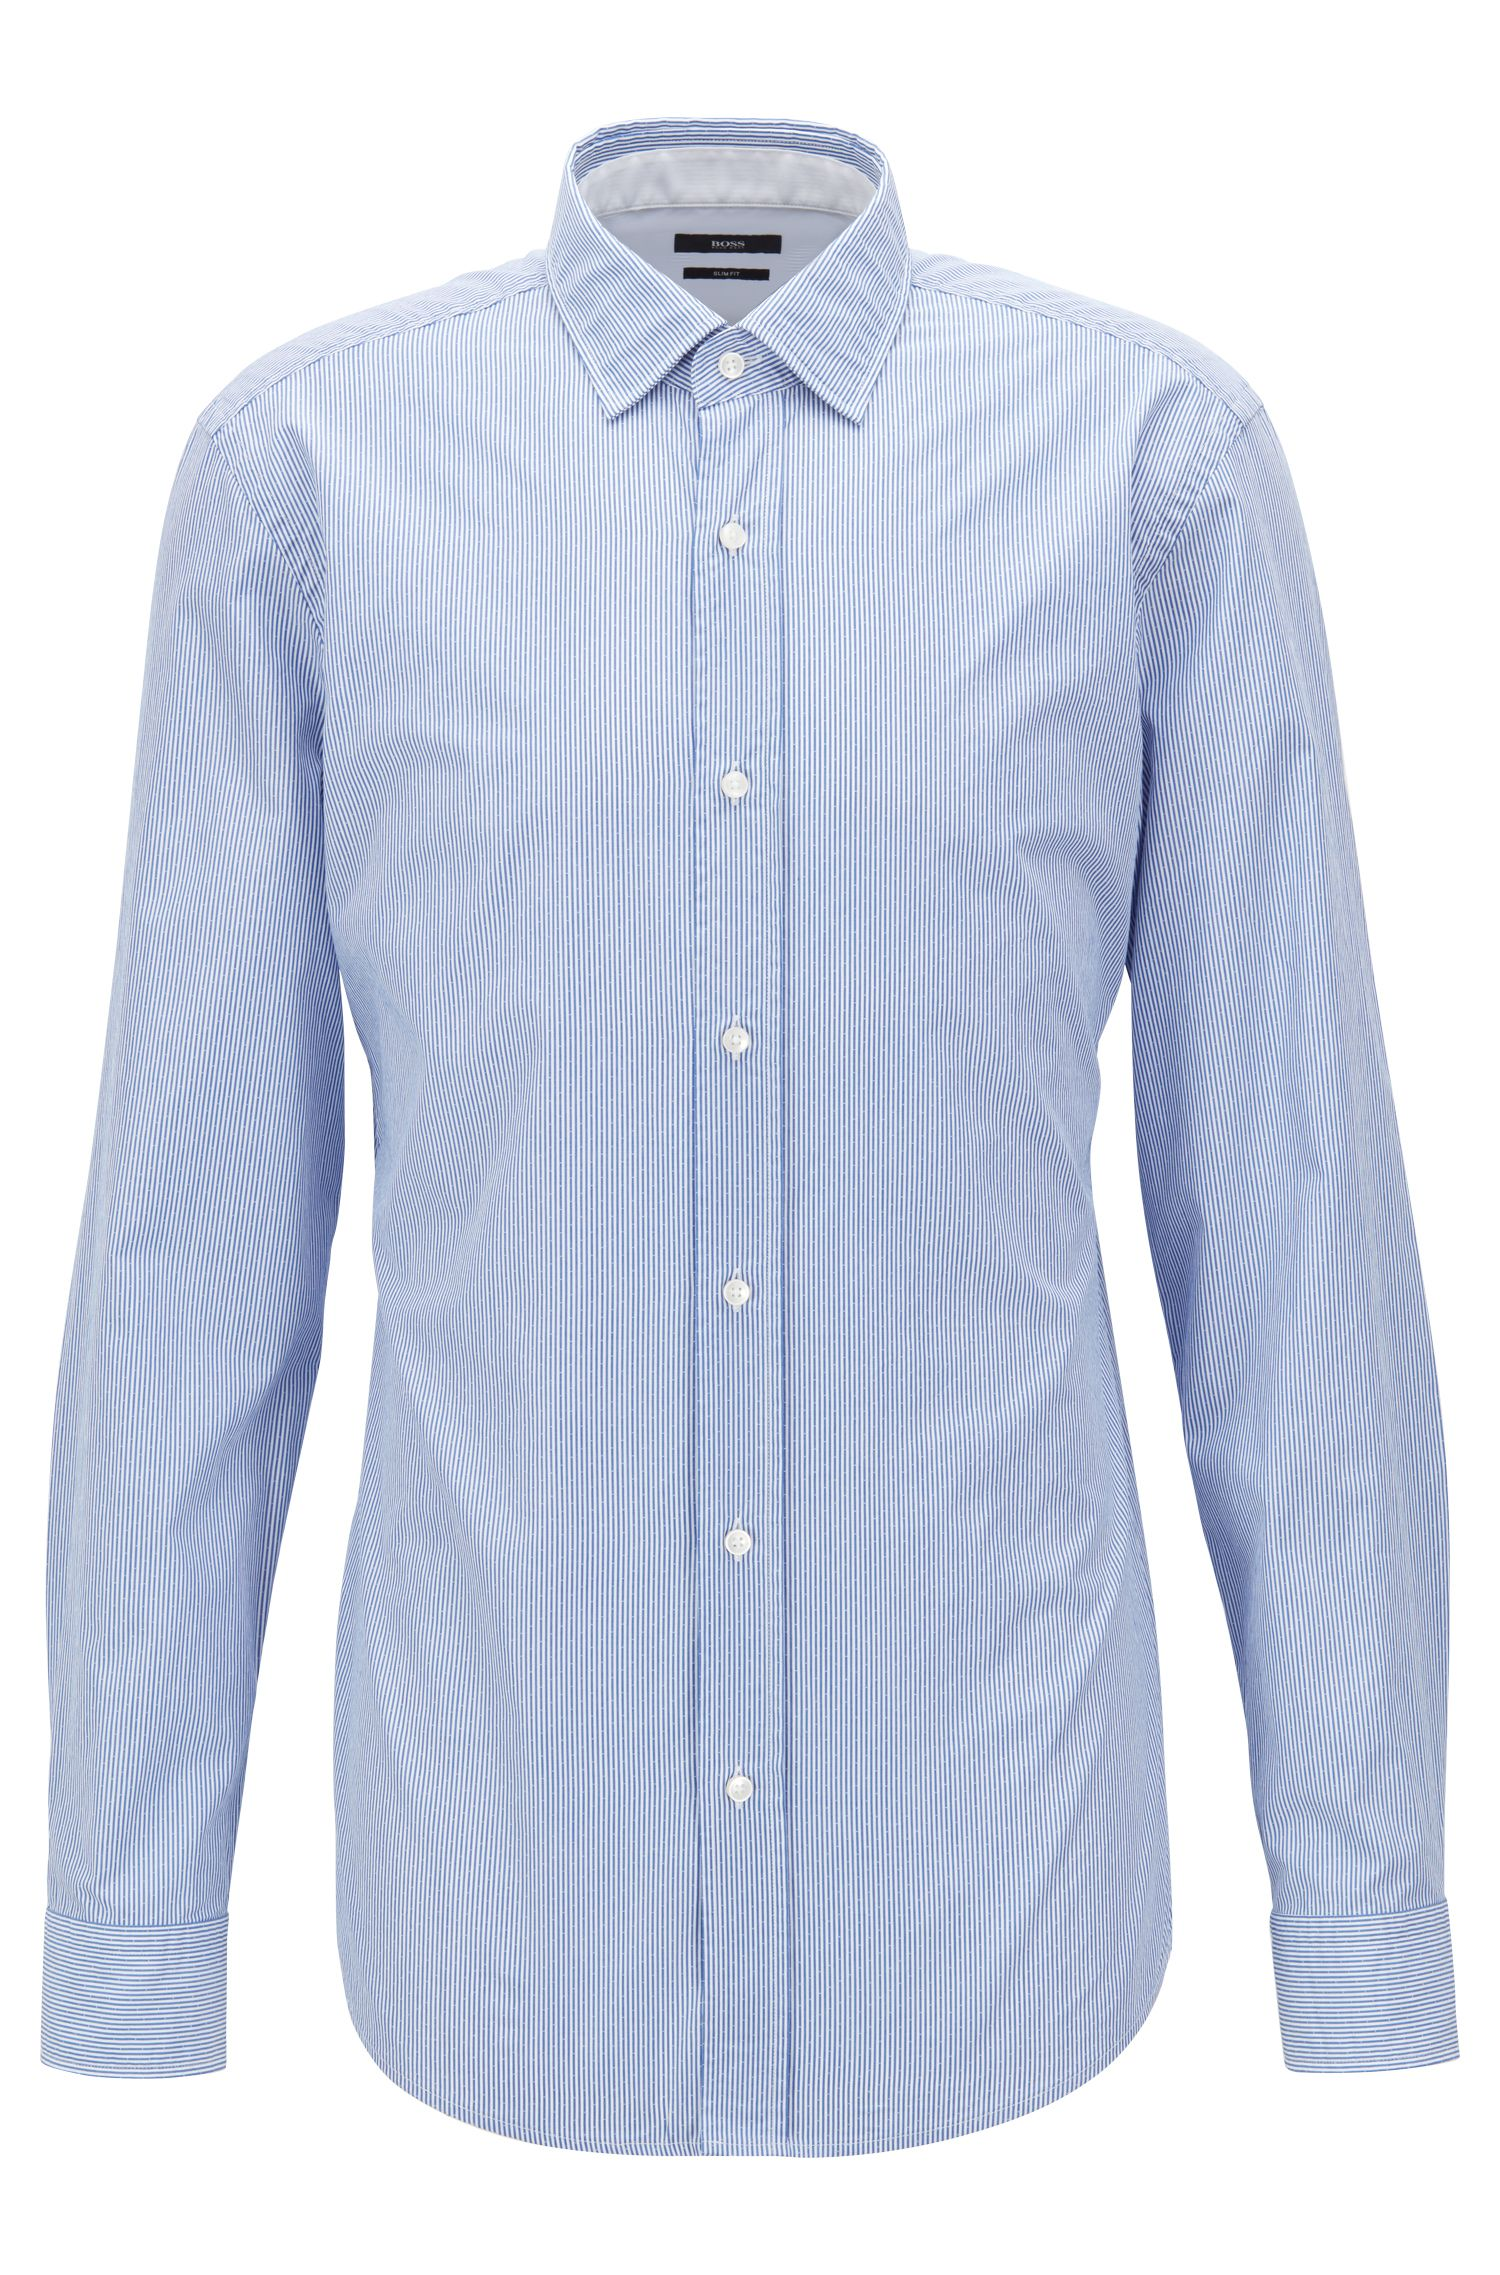 Slim-fit shirt in striped dobby cotton poplin, Open Blue